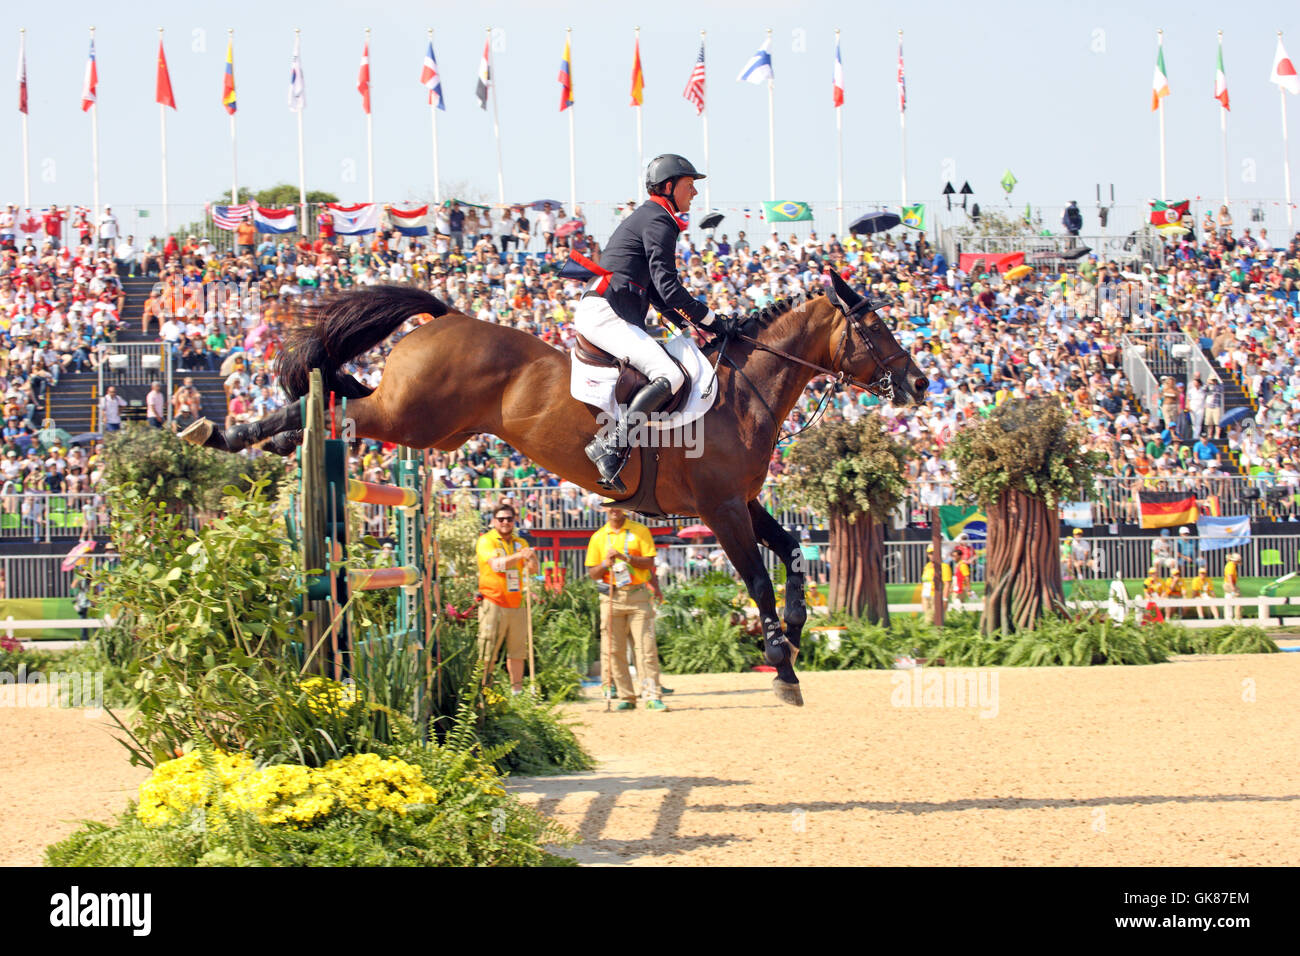 Rio de Janeiro, Brazil. 19th August, 2016. Ben Maher of GBR on 'Tic Tac' in Round B of the Olympic Equestrian - Stock Image